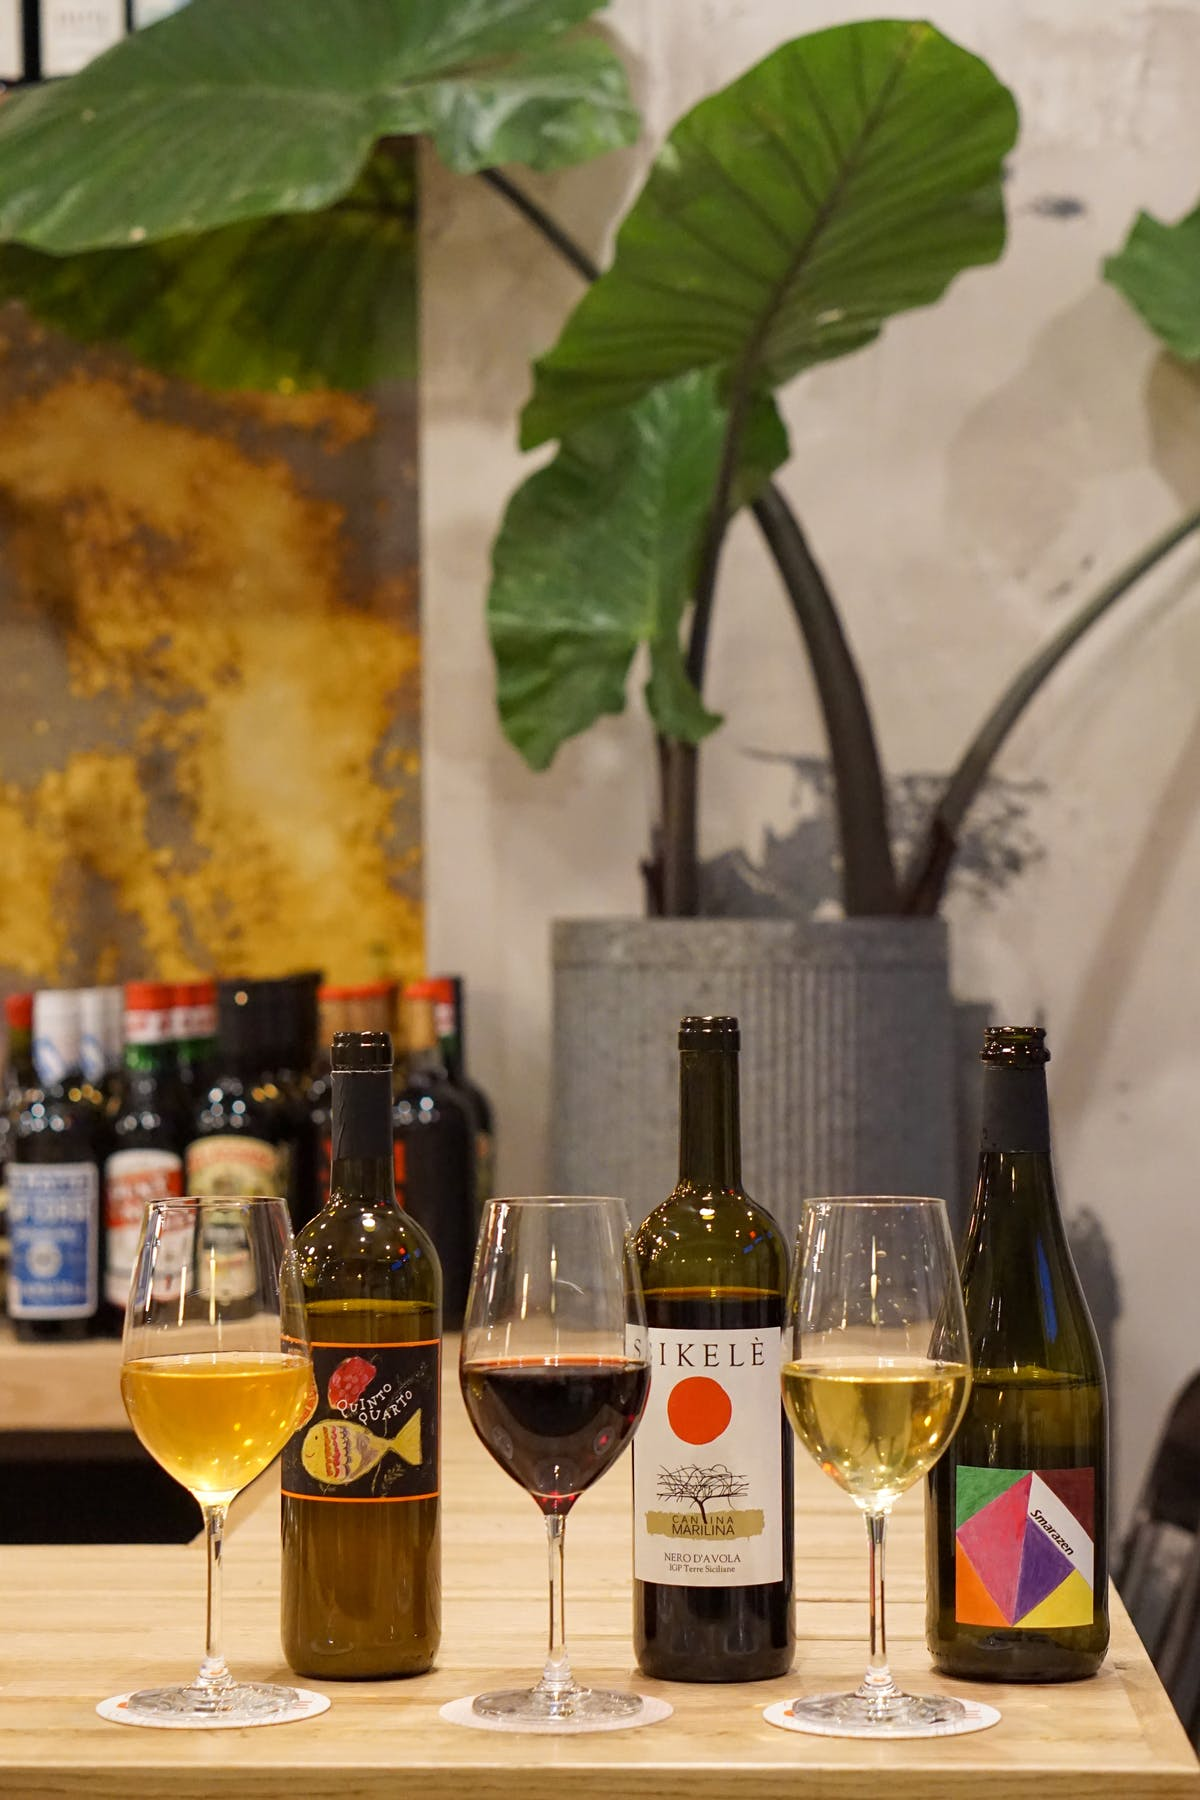 bottles of natural wines next to wine glasses